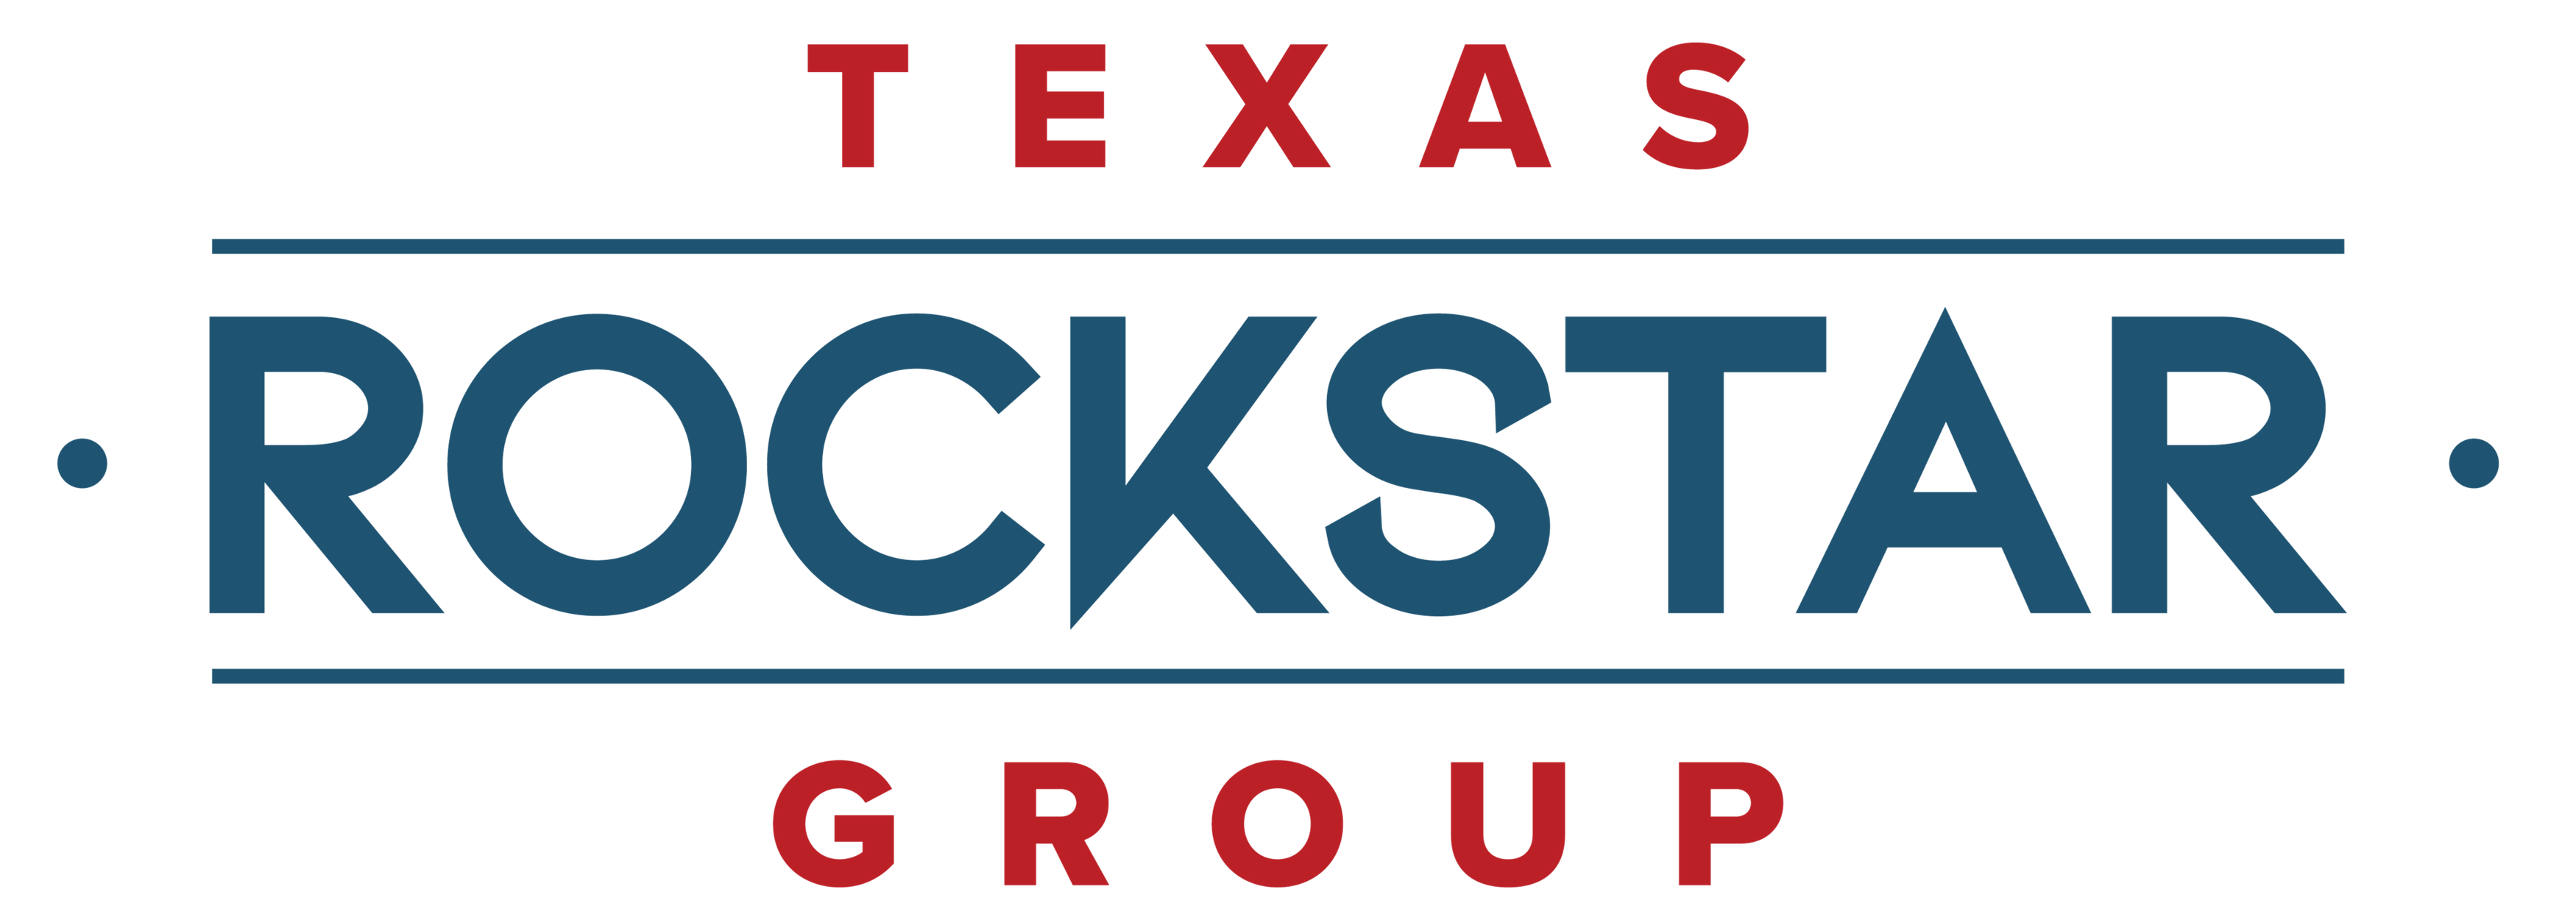 RockStar Group | EXP Realty logo